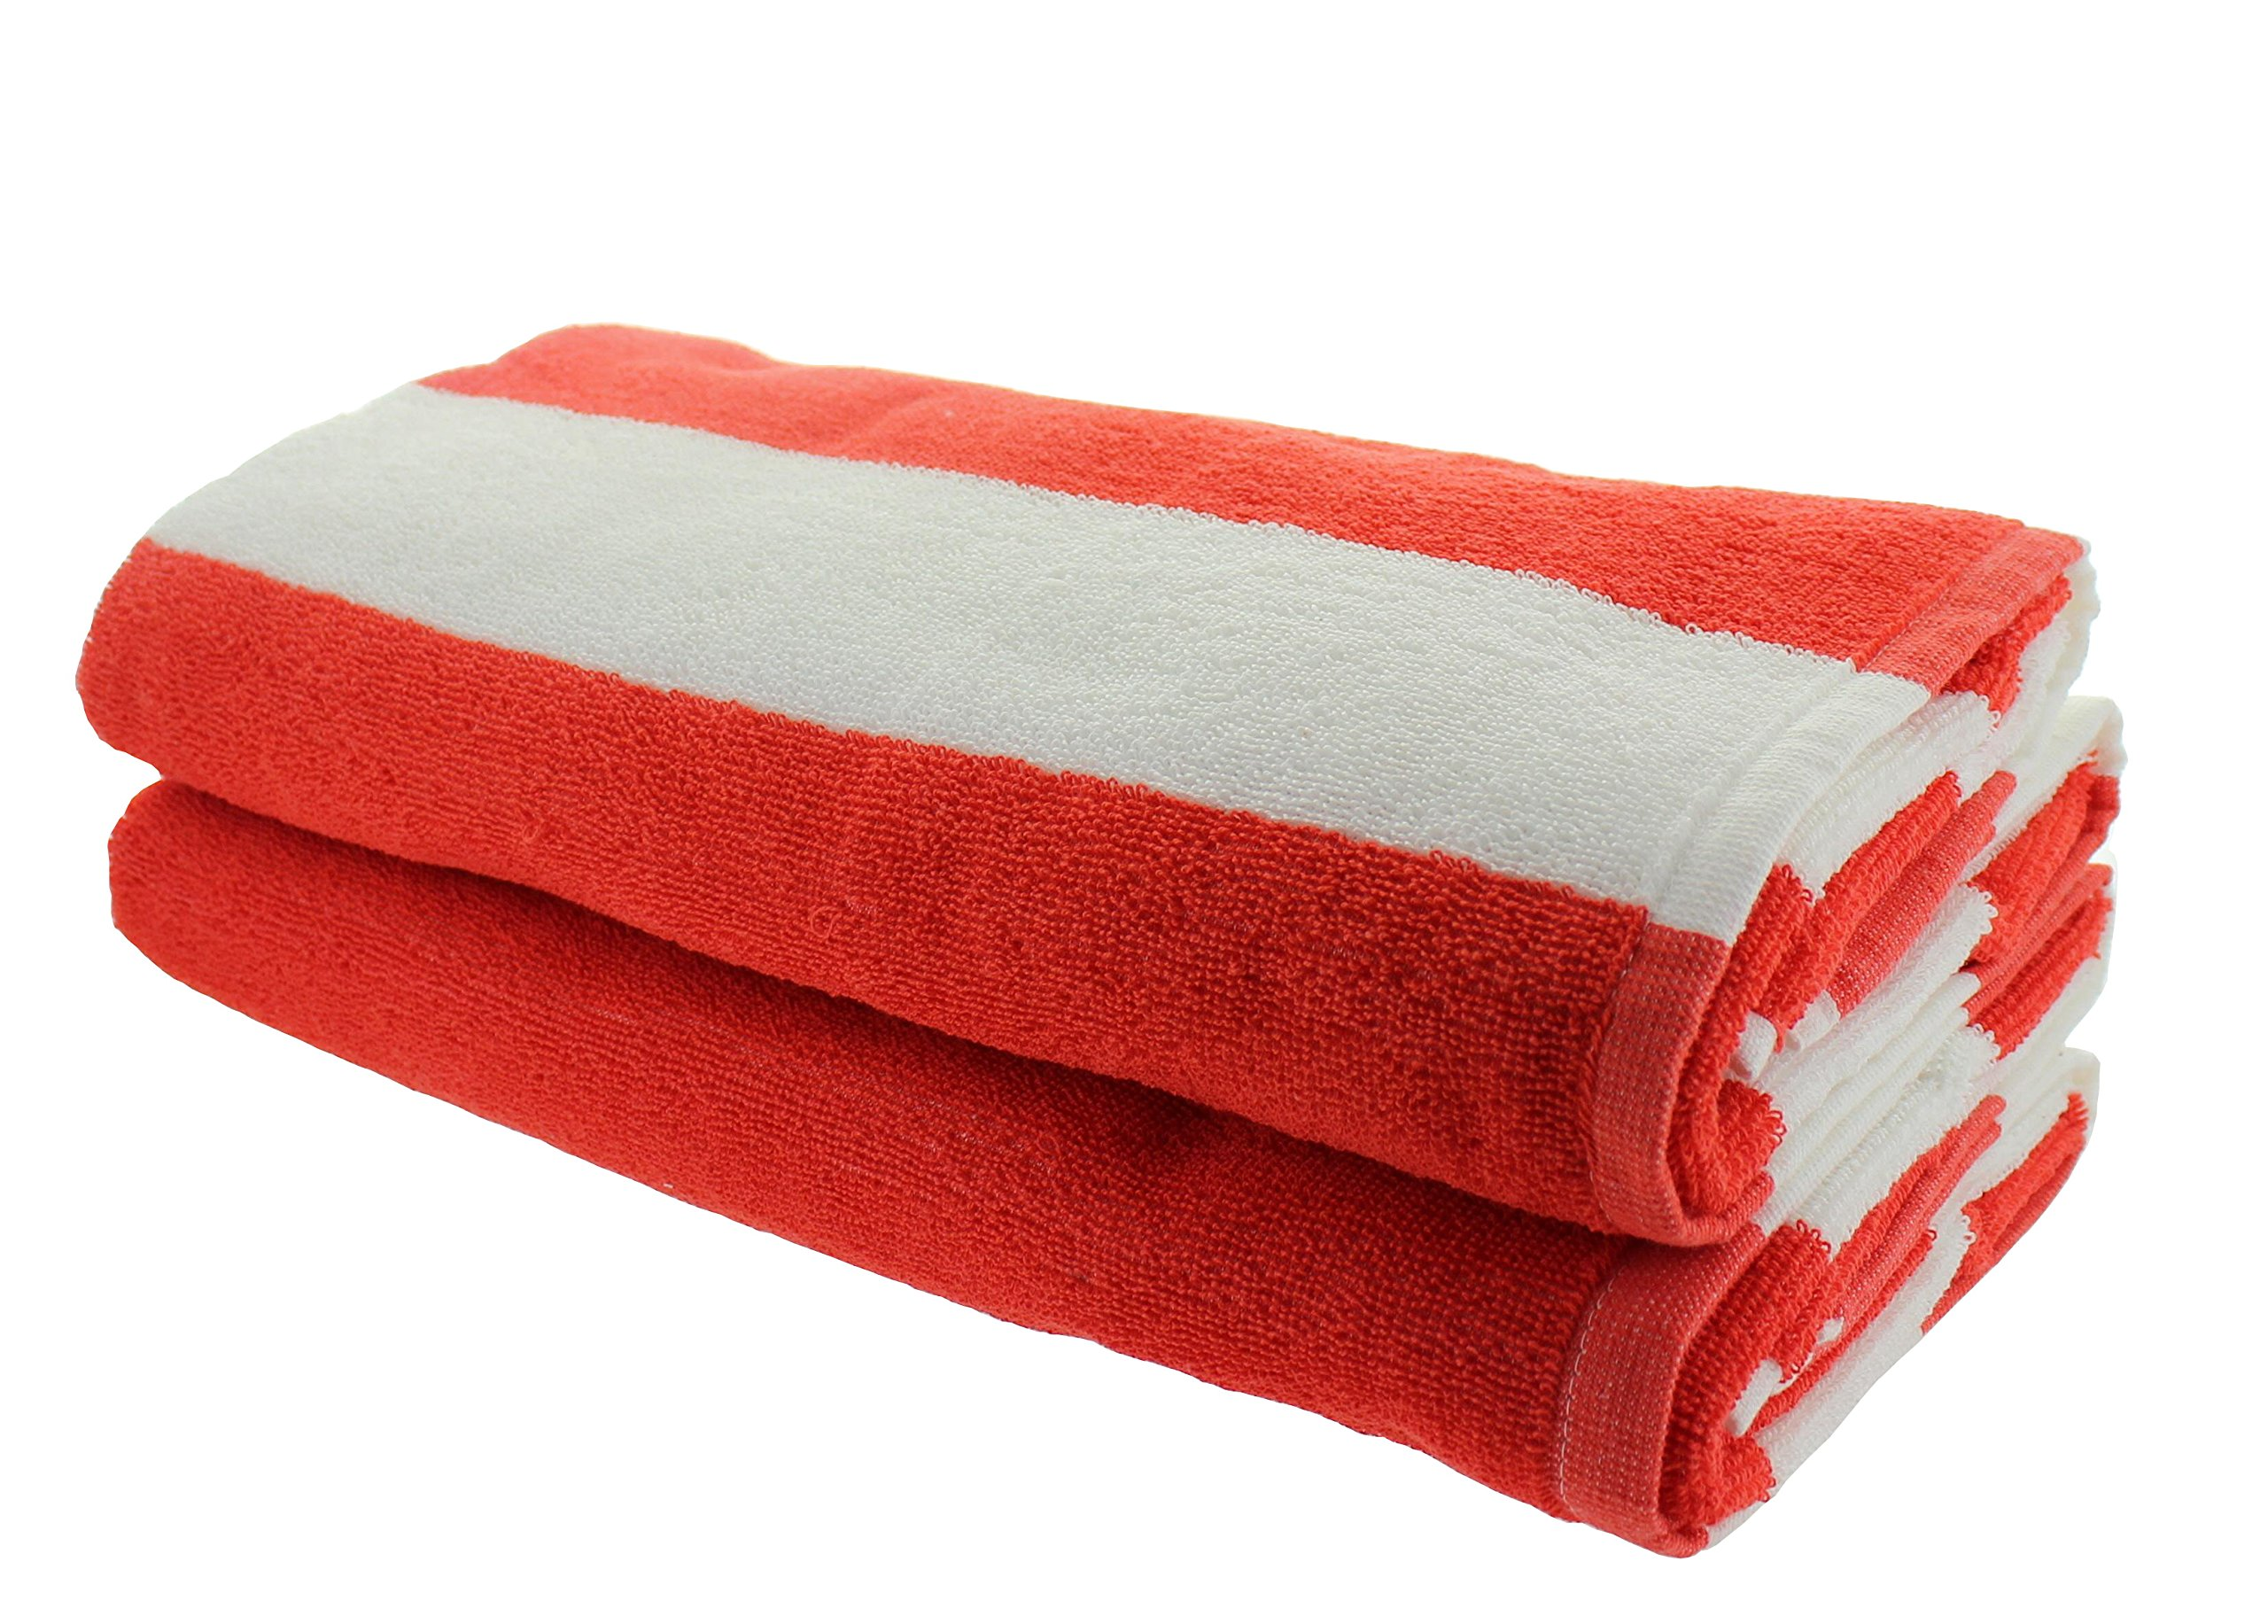 Everyday Resort Quality Cabana Beach Towels - Pack of 2 Cabana Orange Stripe Pool Towels 100% Cotton - Large 60'' by 30'' - Soft and Absorbent, Great for the Pool and the Beach!